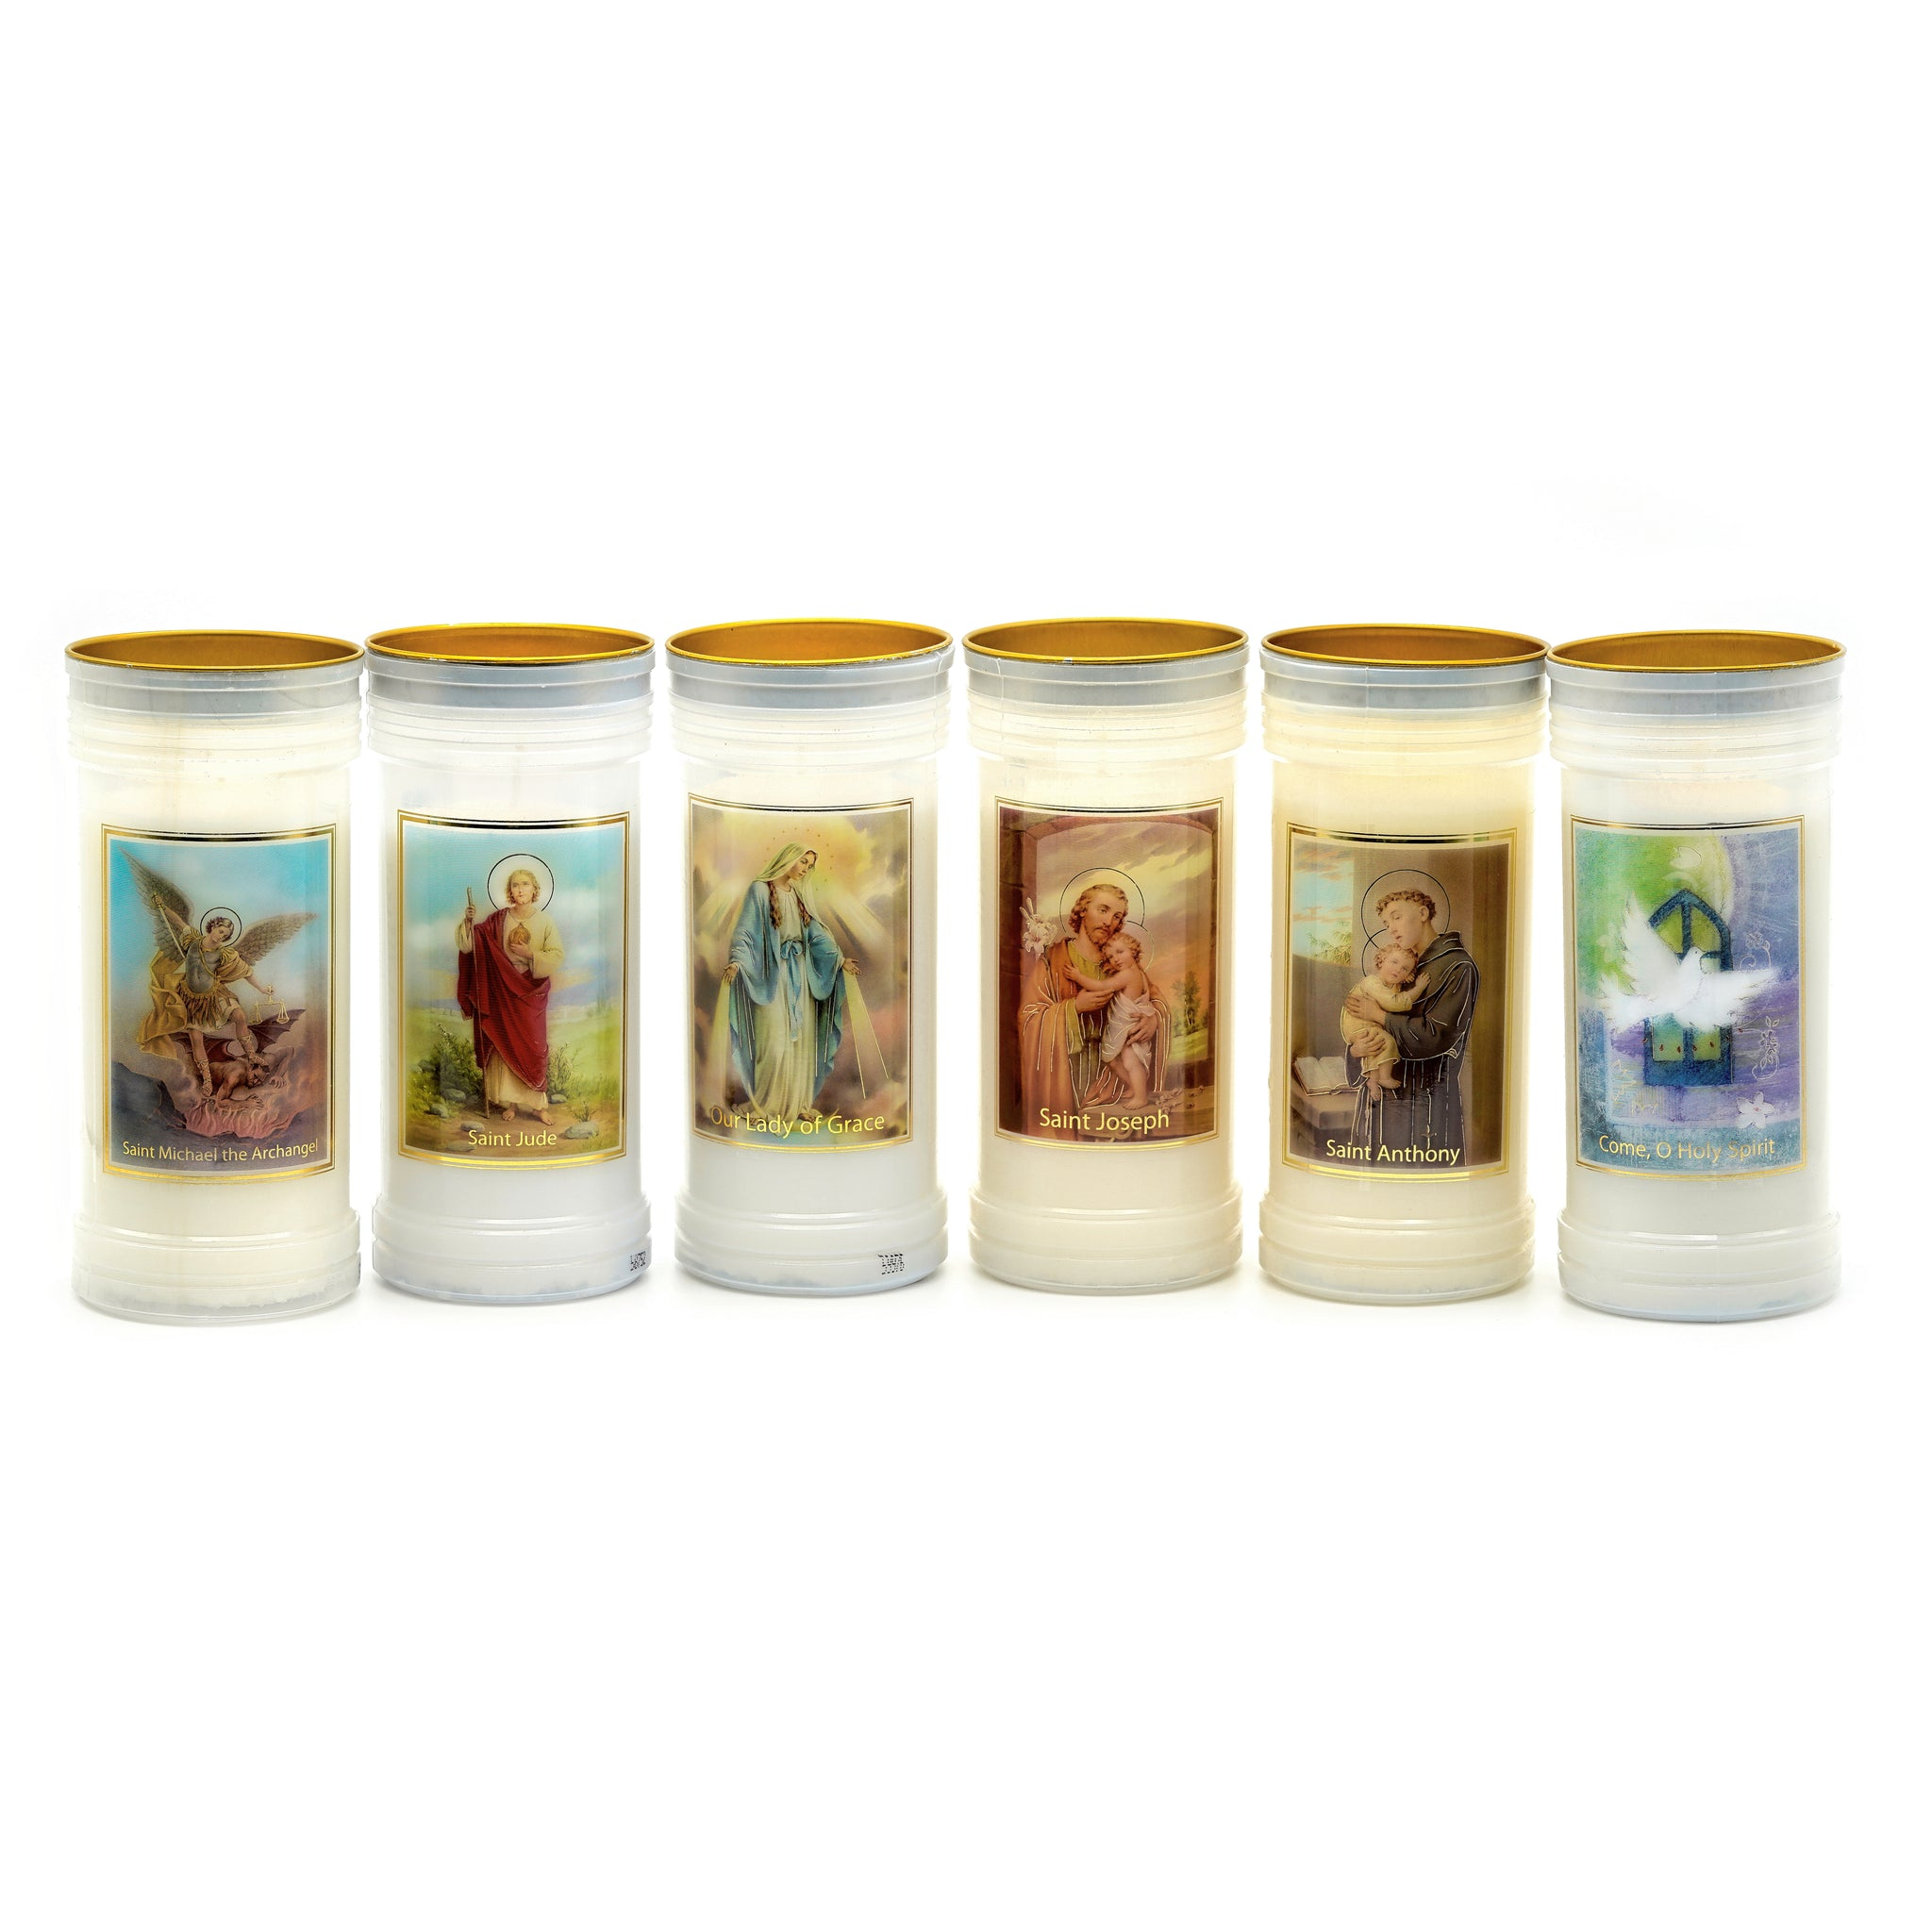 DEVOTIONAL CANDLES (72 HOURS) - A